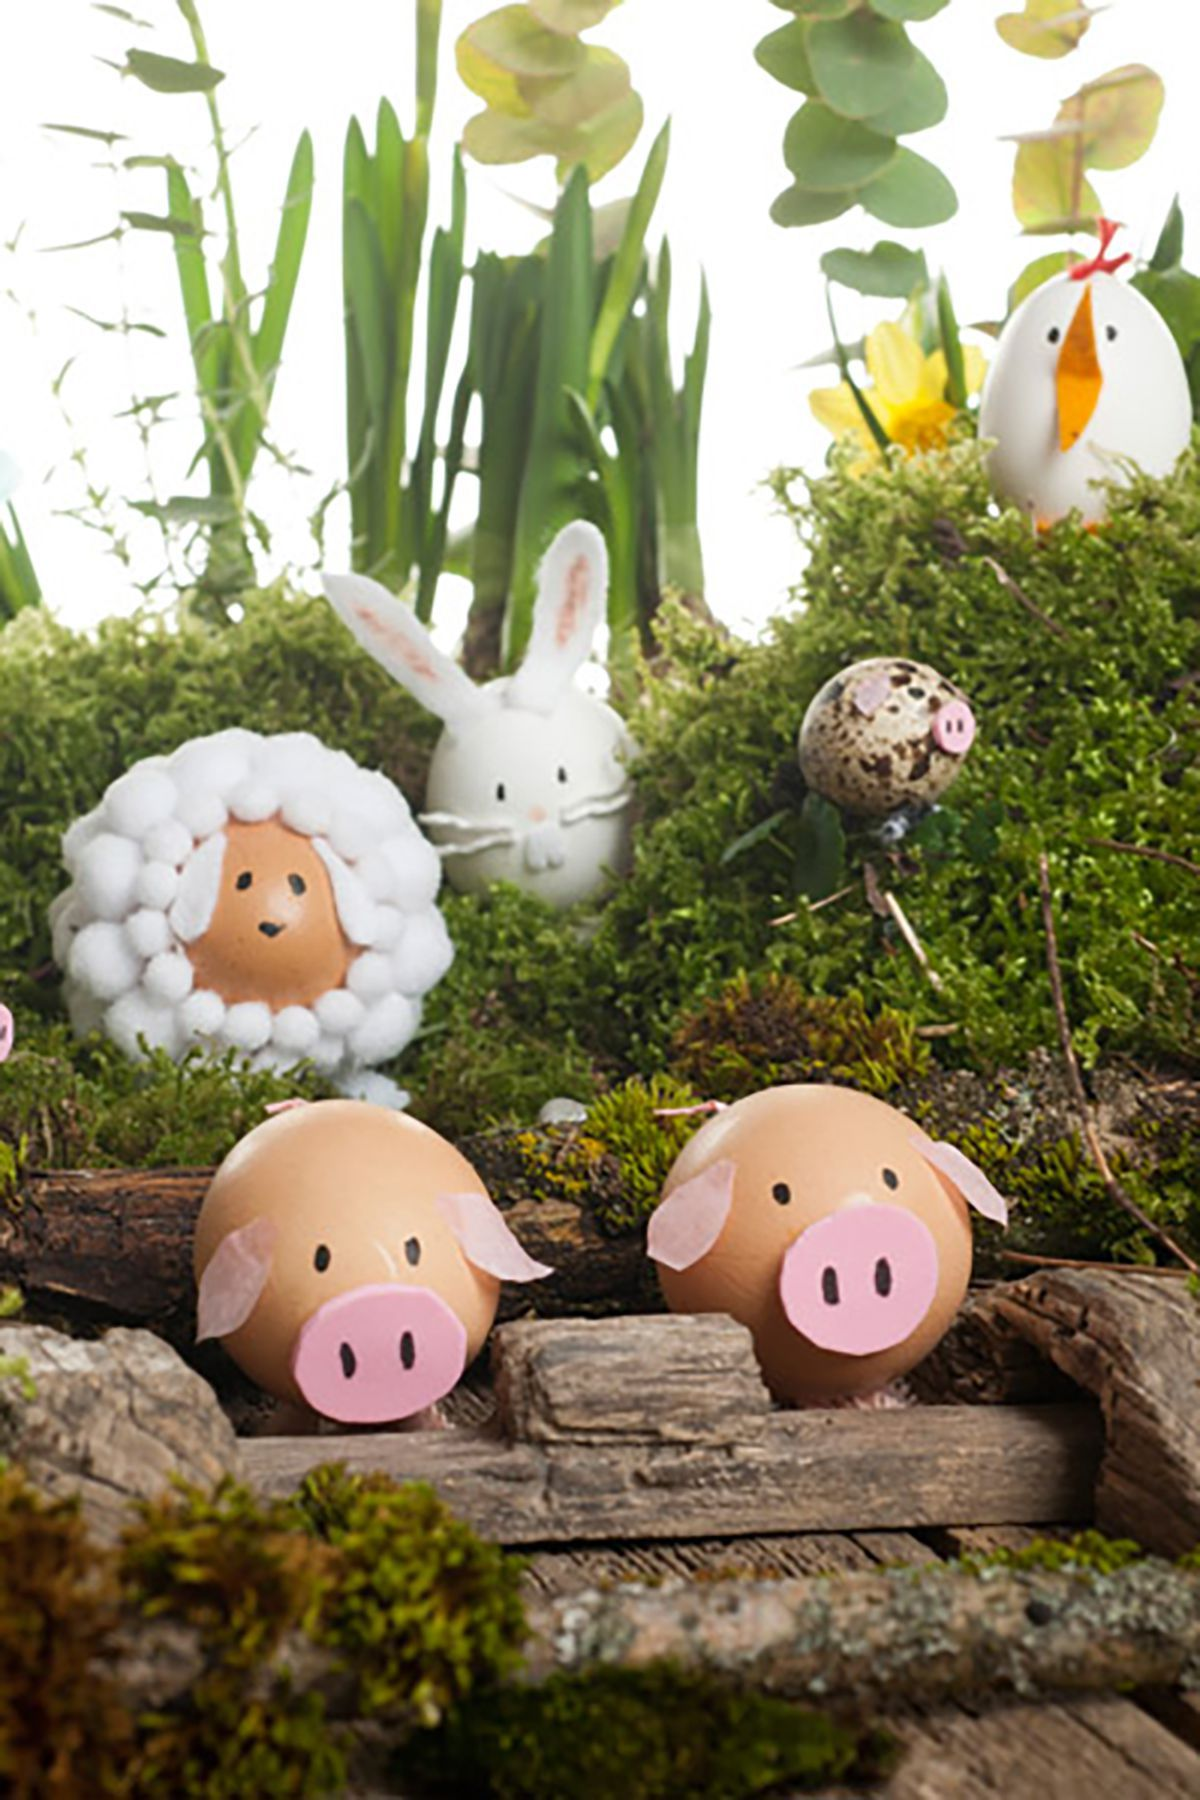 Creative Easter Egg Decorations and Designs to Inspire You ...